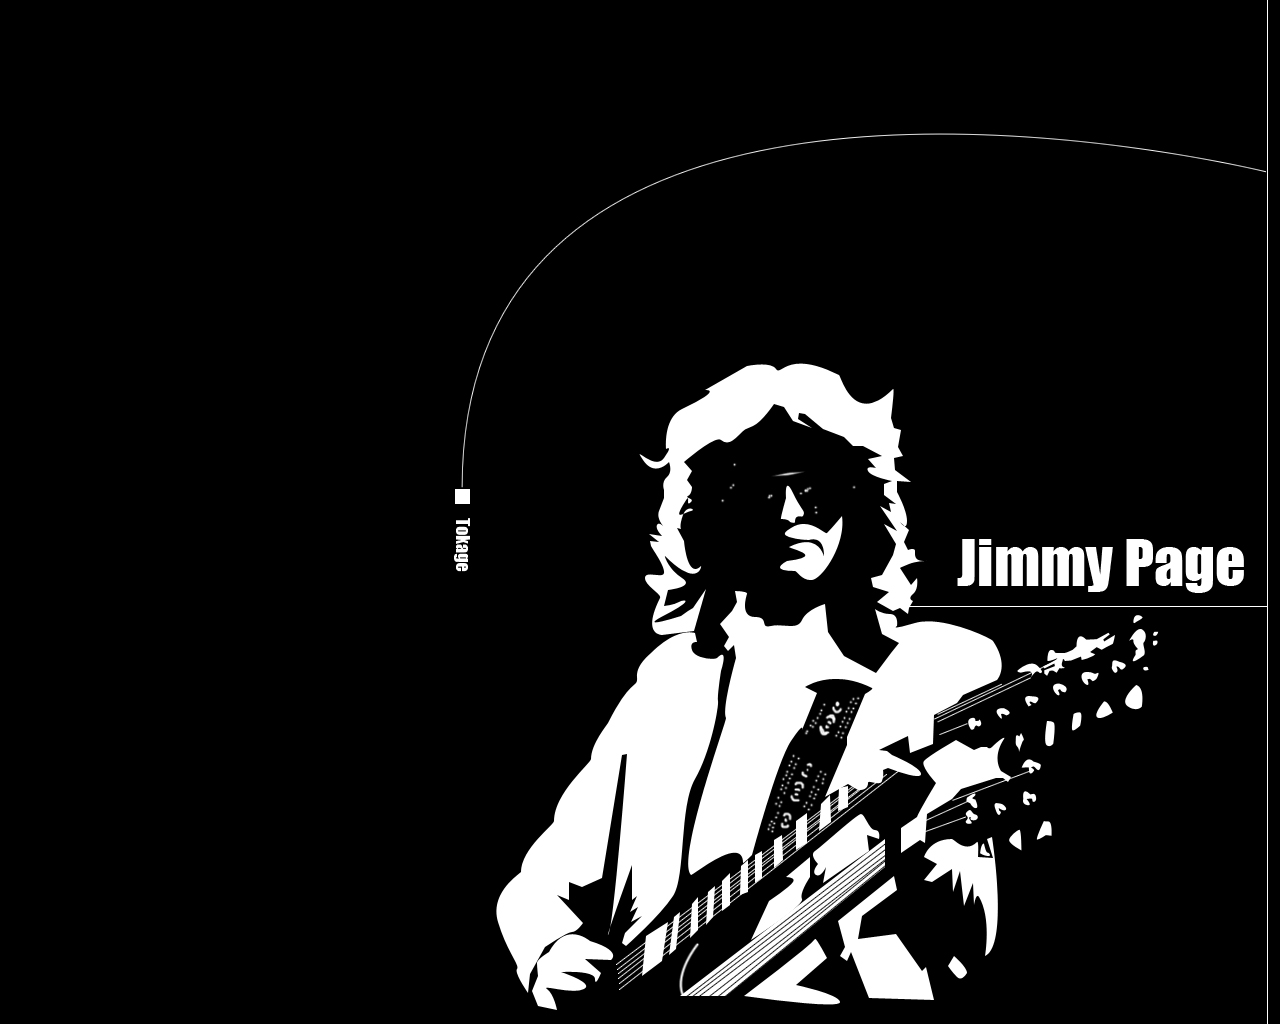 Jimmy Page WallPaper by tokage55 1280x1024